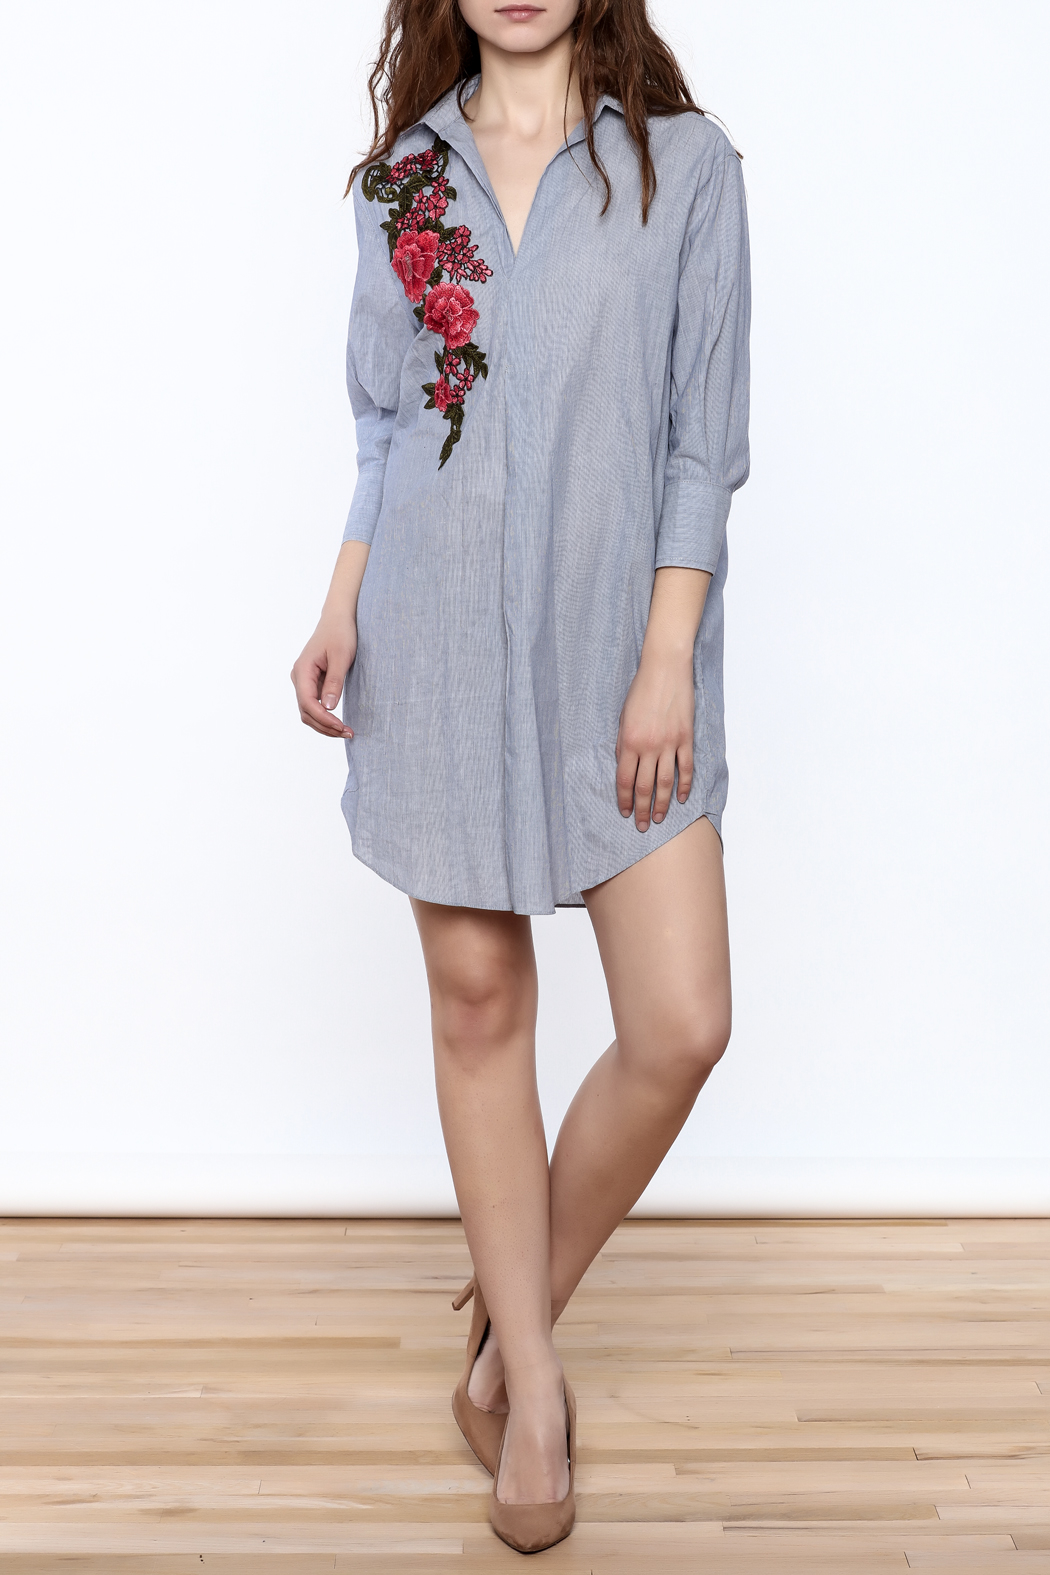 BEULAH STYLE Floral Applique Dress - Front Full Image